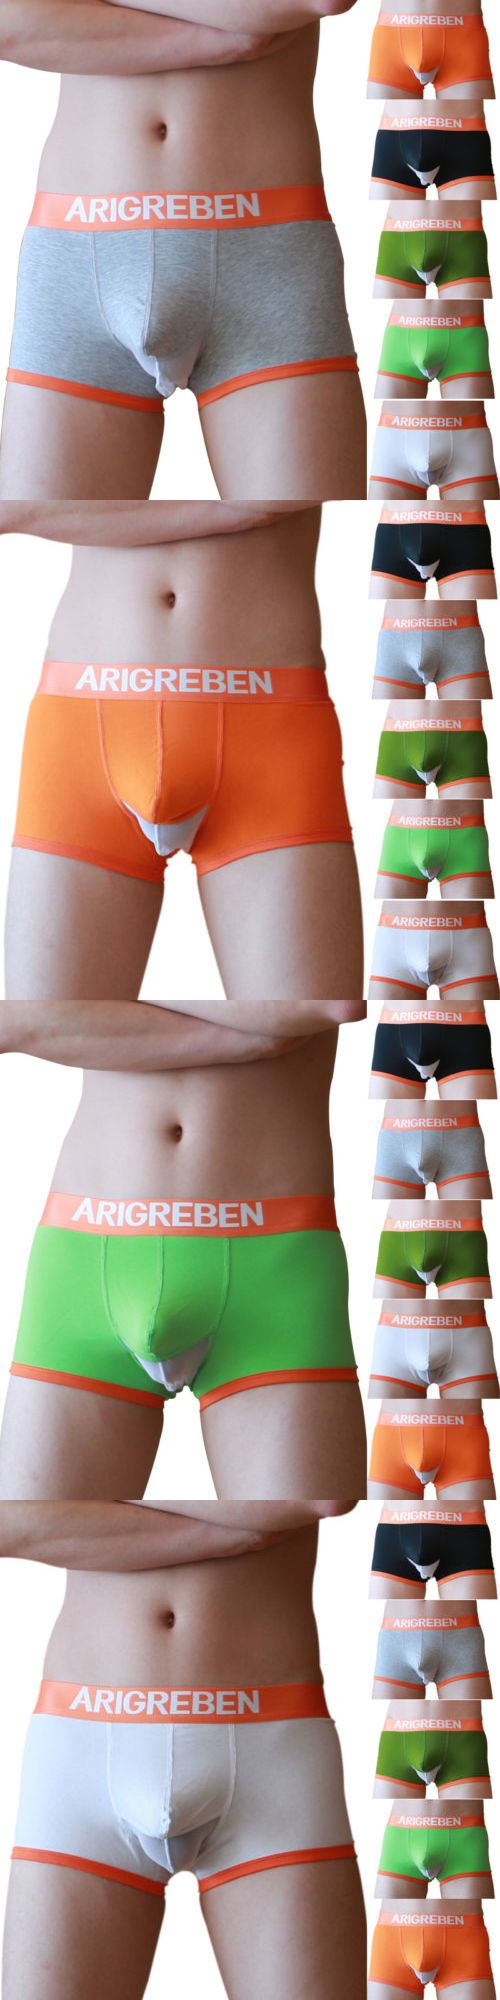 Man Boxers: Trunks Soft Underwear Mens Boxer Briefs Shorts Bulge Pouch Underwear Underpants BUY IT NOW ONLY: $3.98